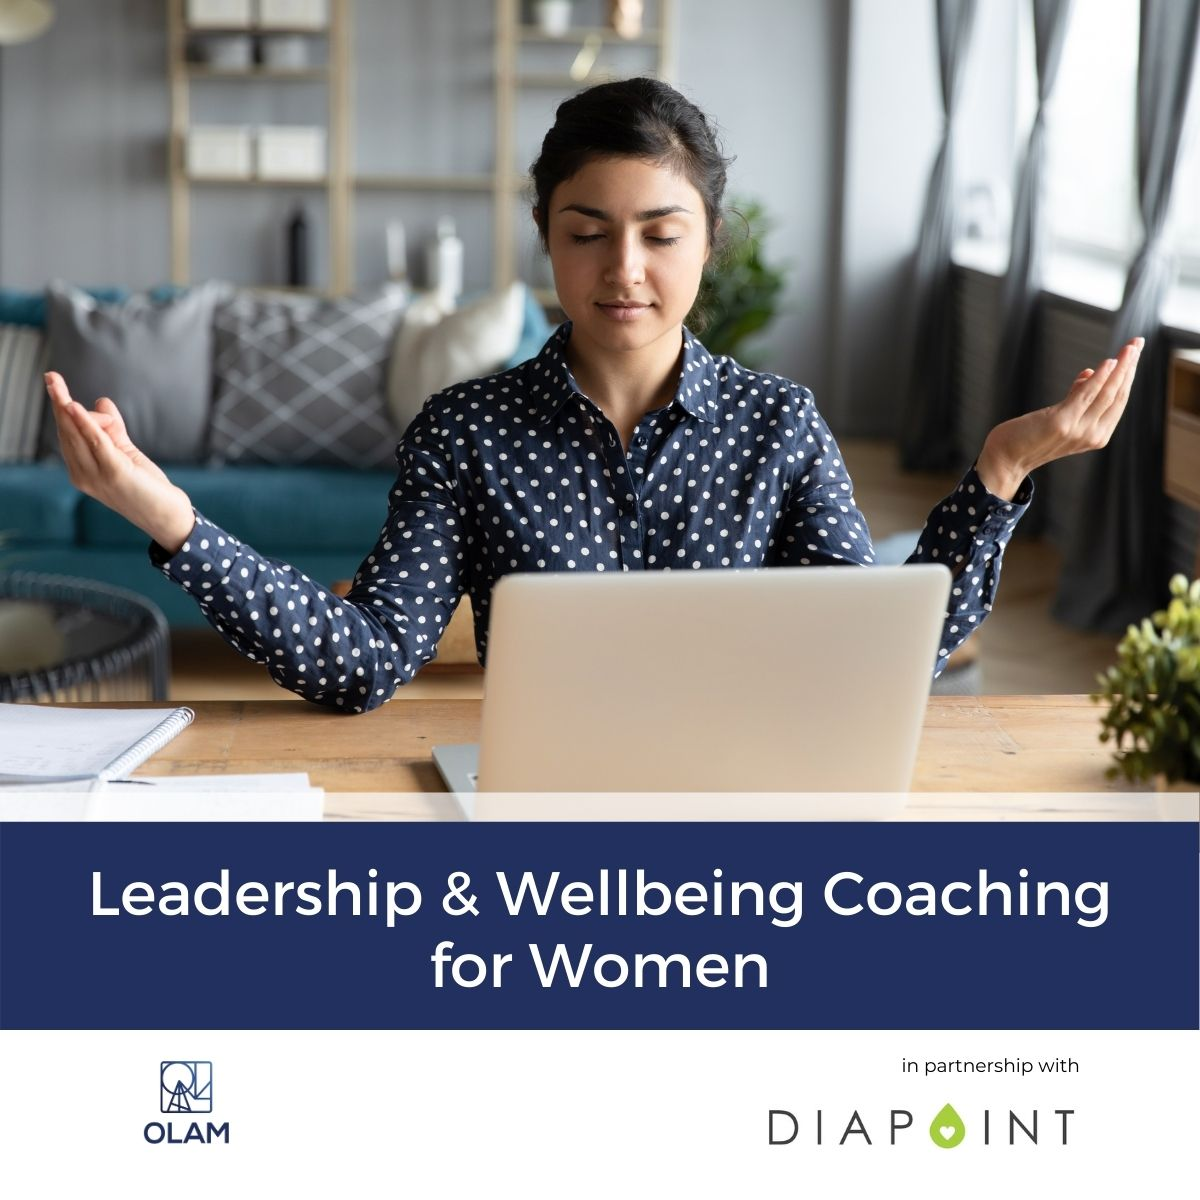 Leadership & Wellbeing Coaching Programme for Women